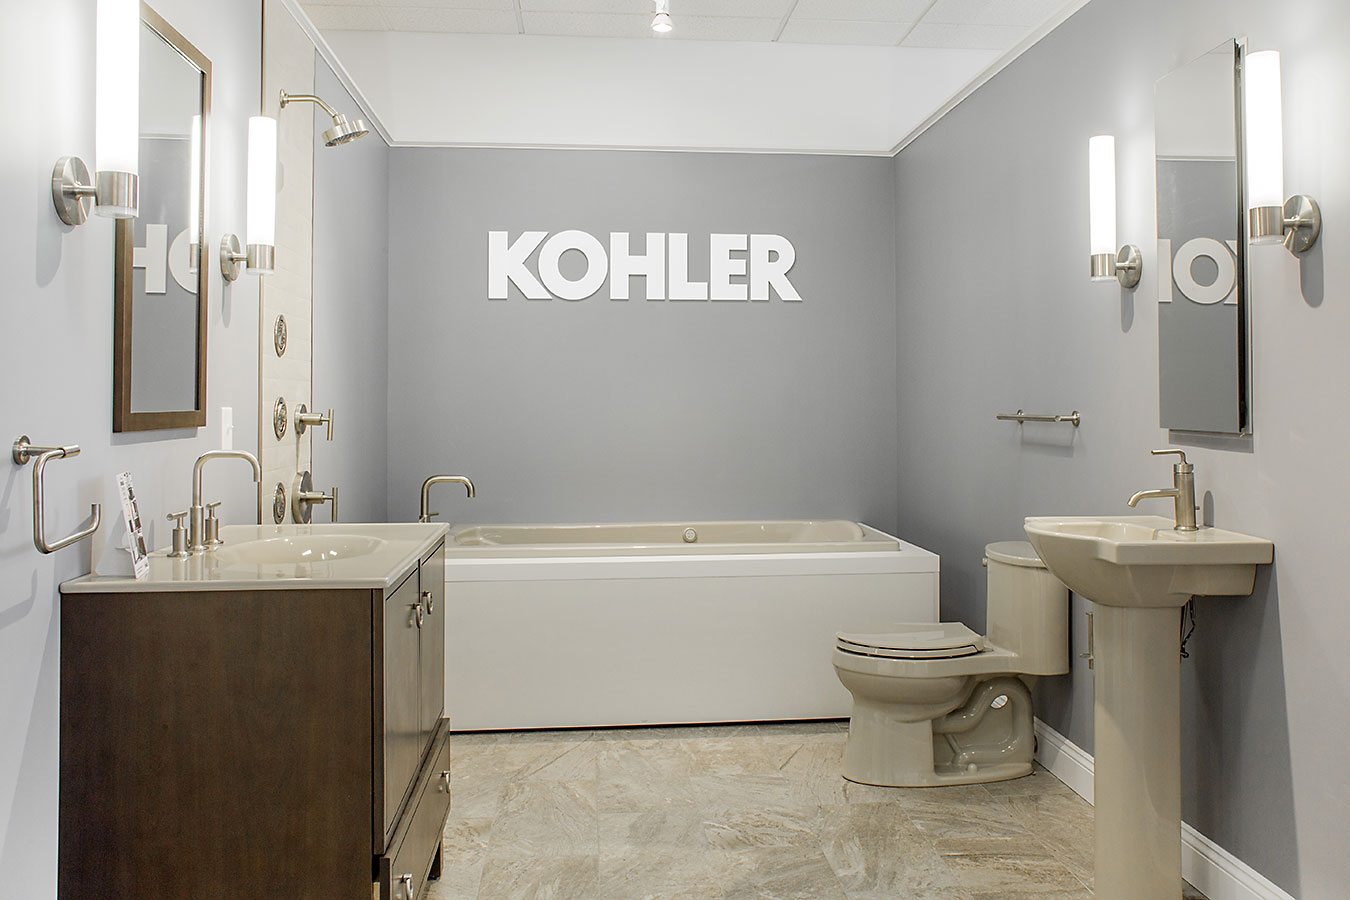 Bathroom showrooms in ma - Showroom Gallery Kitchen Bath Showroom Accessories Dartmouth Ma Middletown Ri